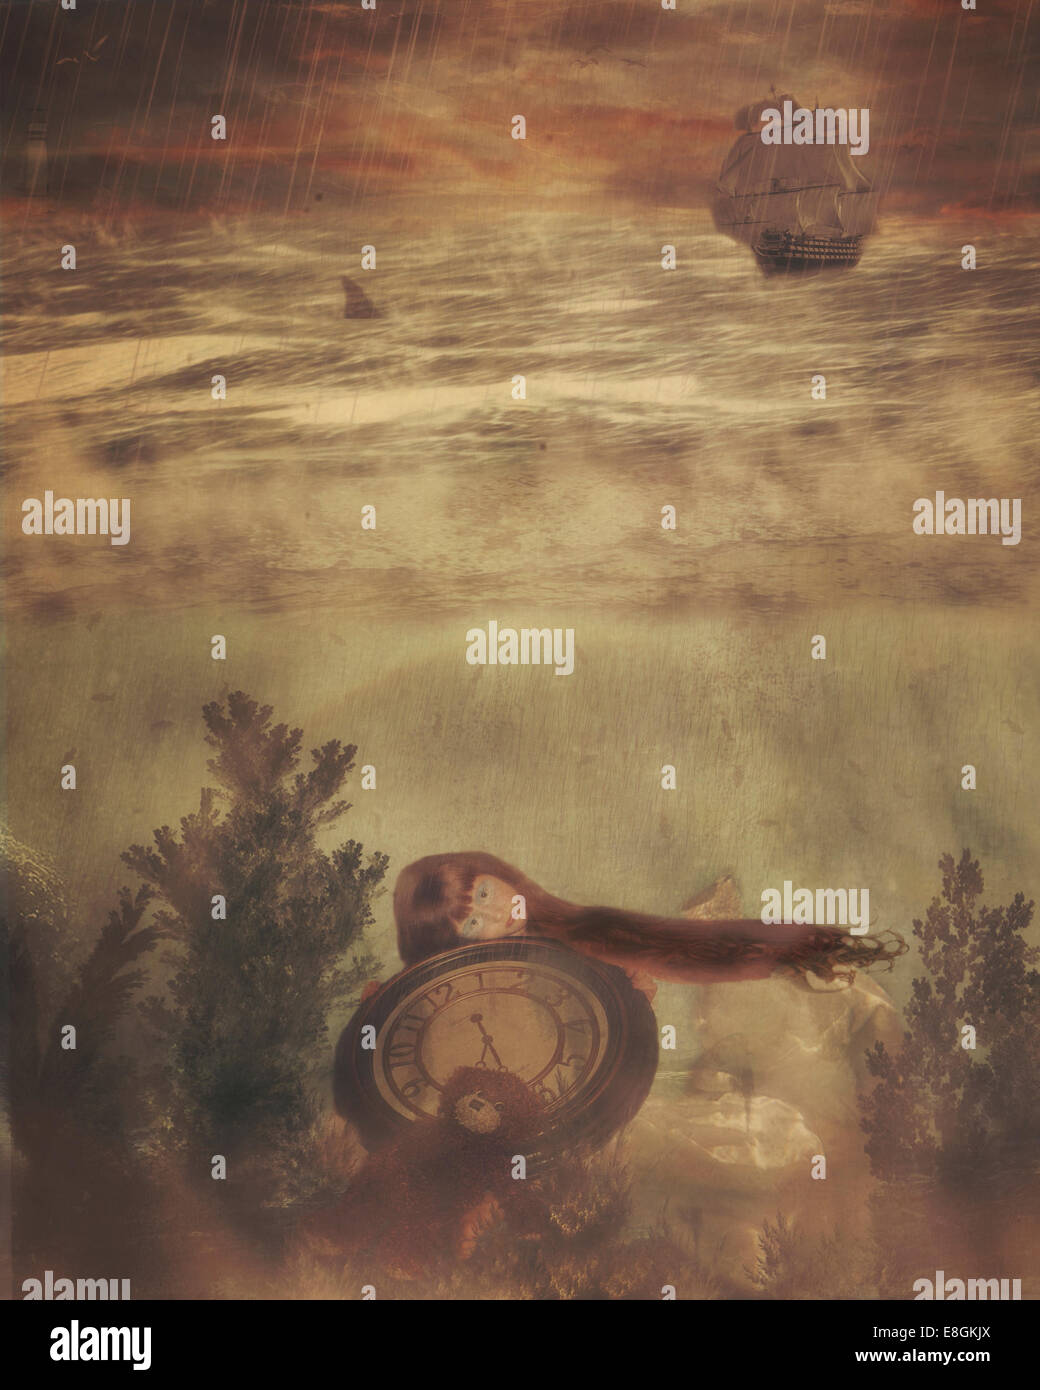 Illustration de girl holding grande horloge de l'underwater Photo Stock